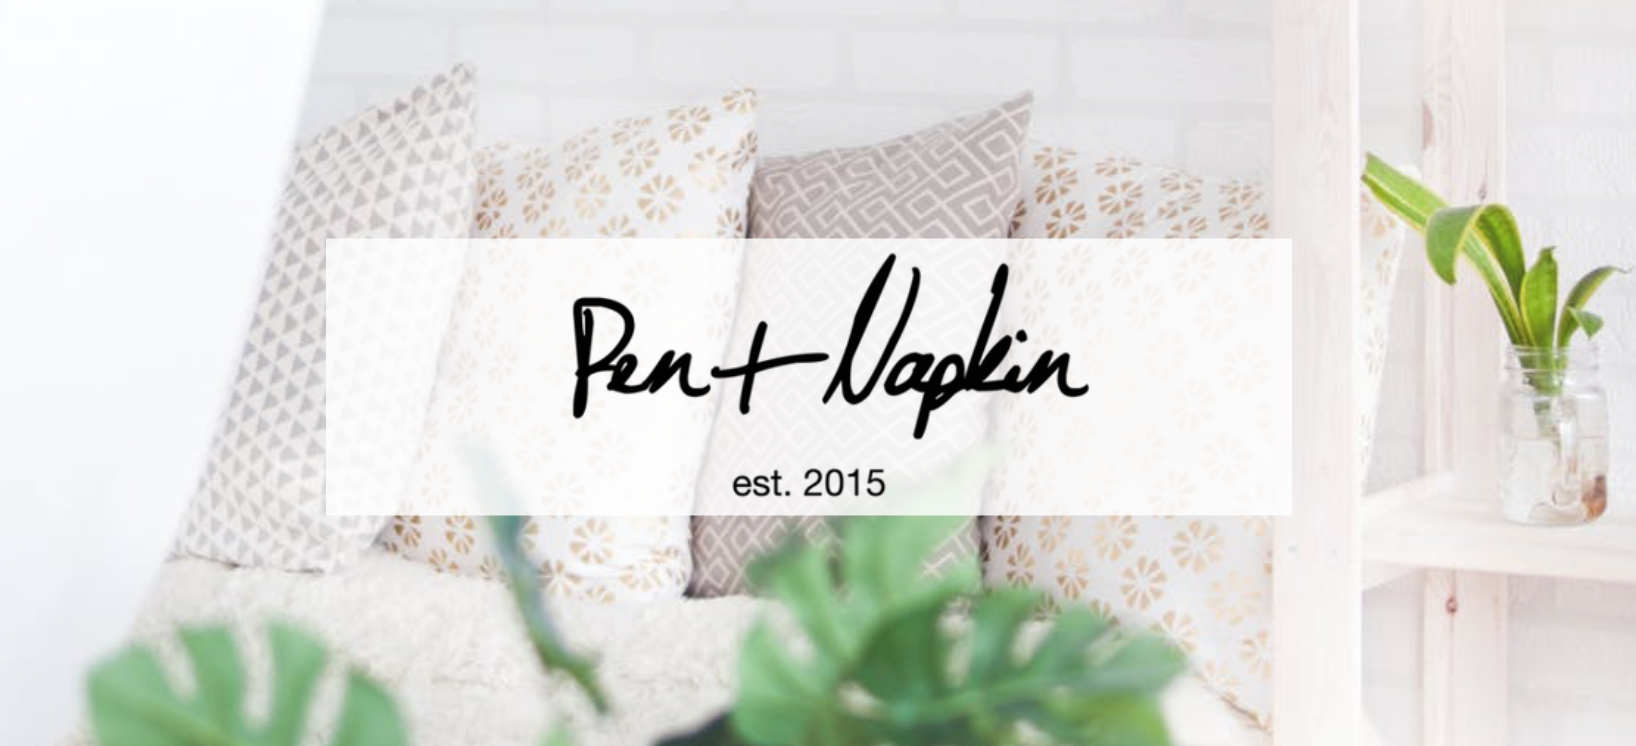 pen and napkin how to end homelessness through design